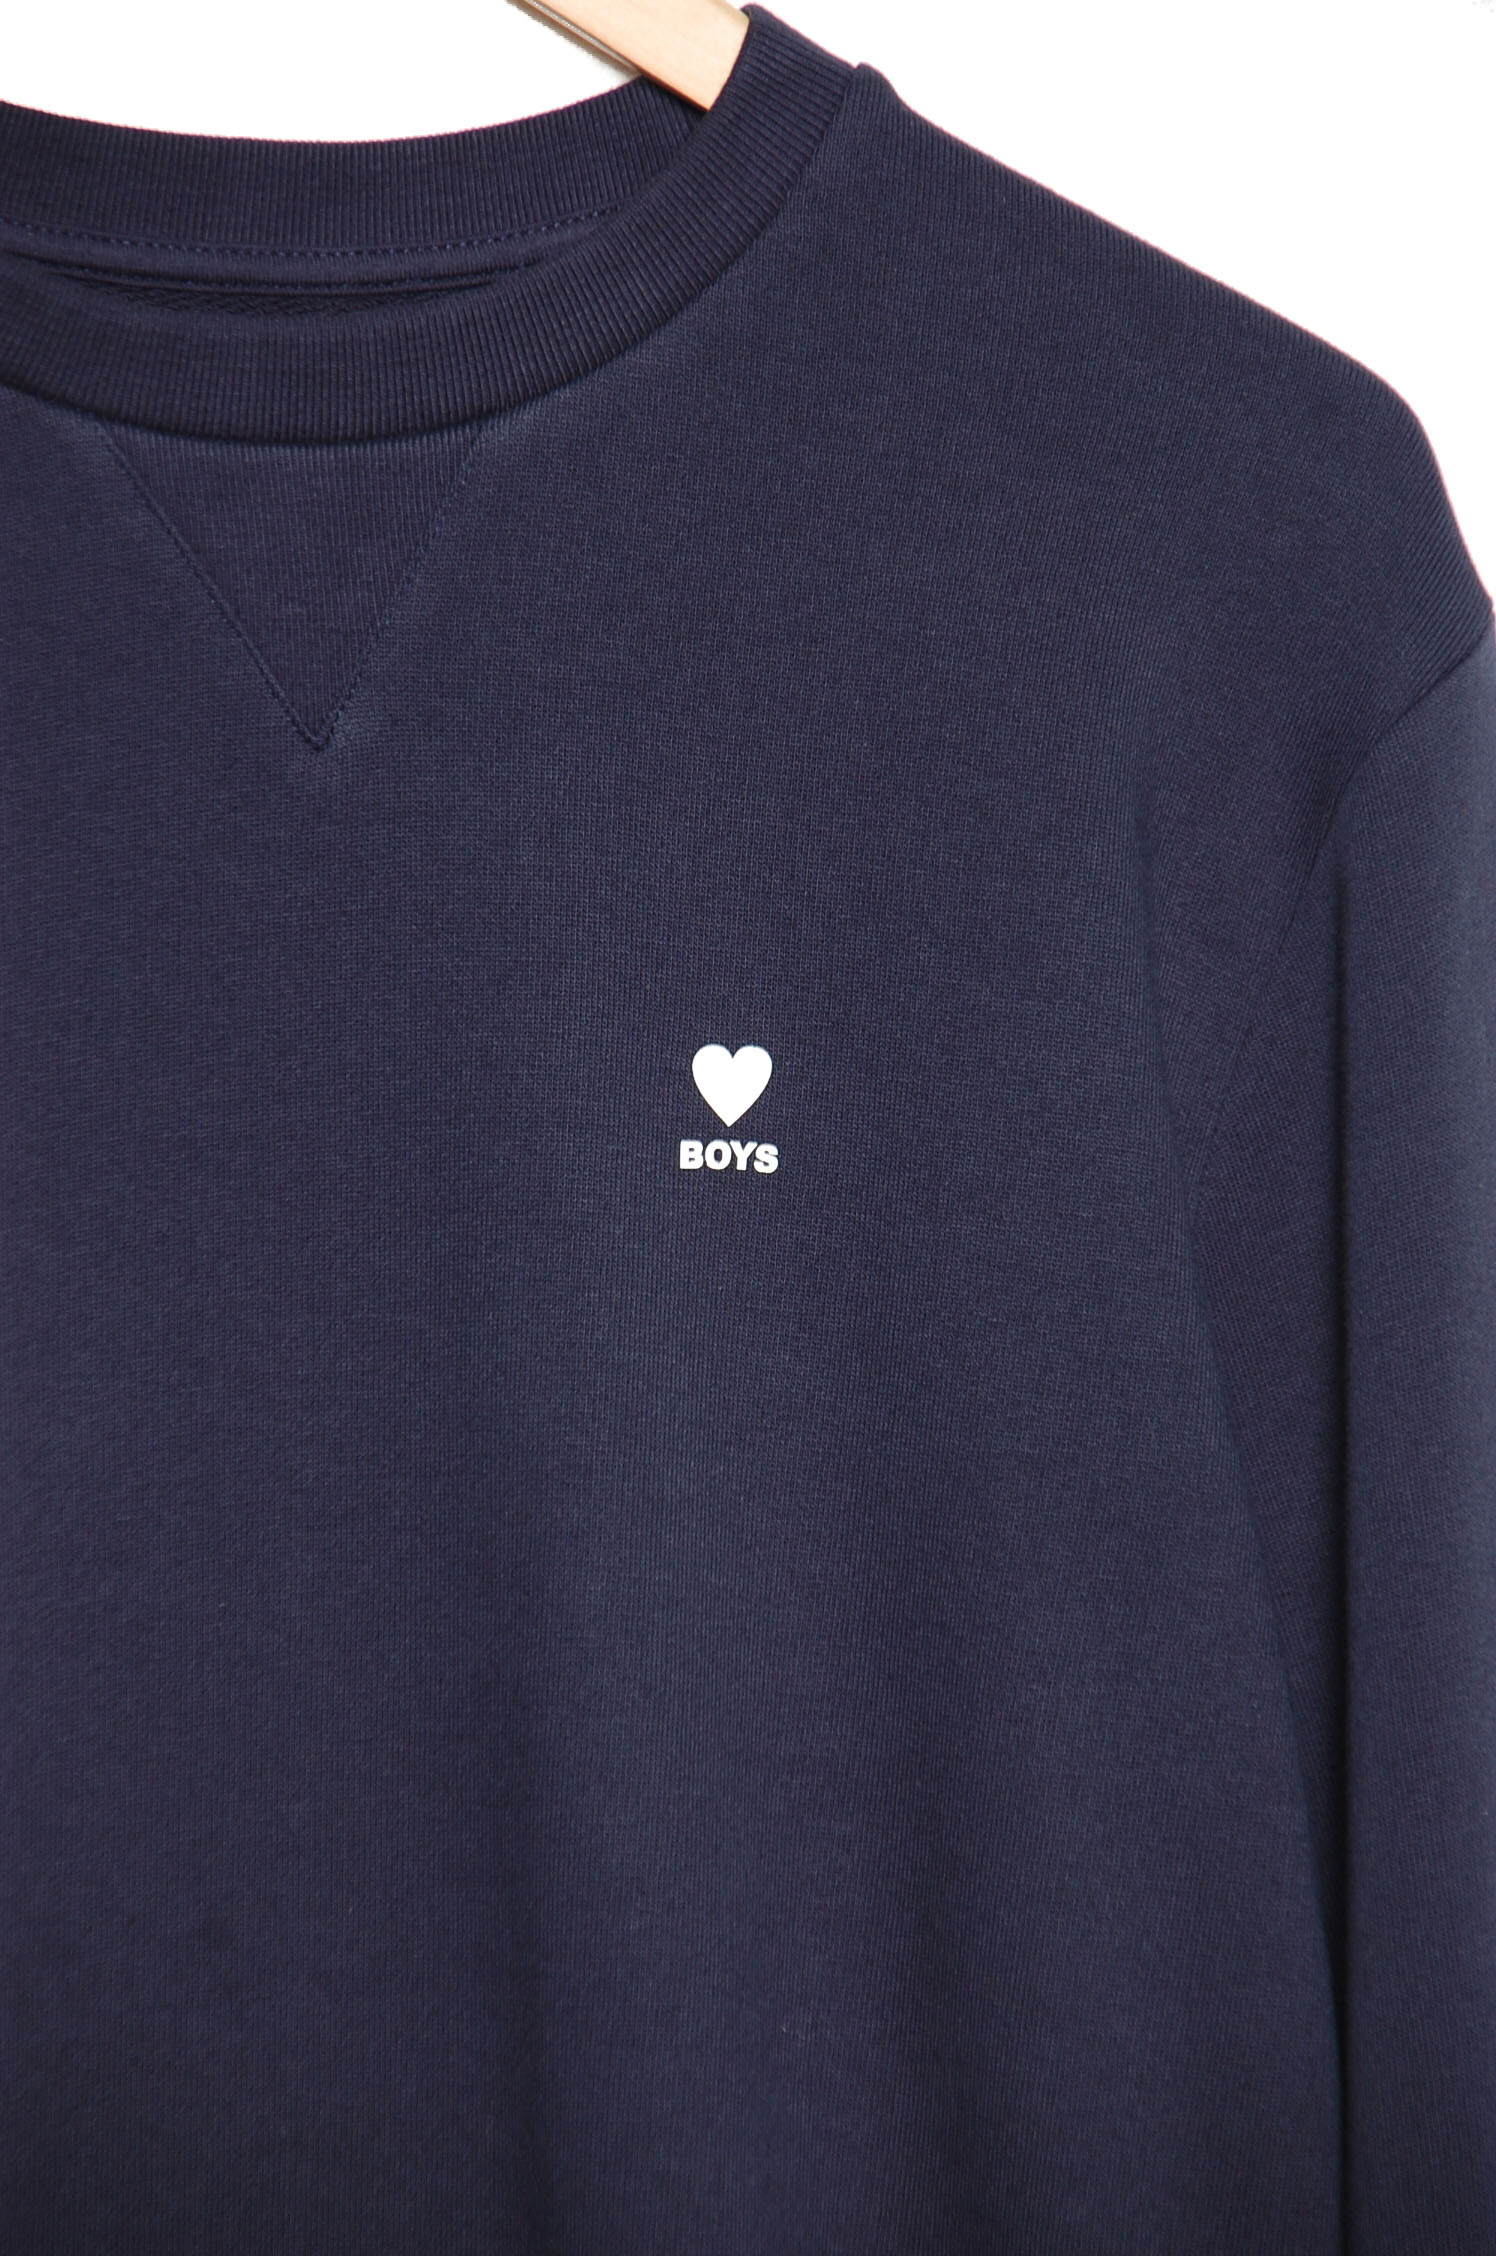 Brosbi The Icon Sweat Heart Boys 1079111B navy